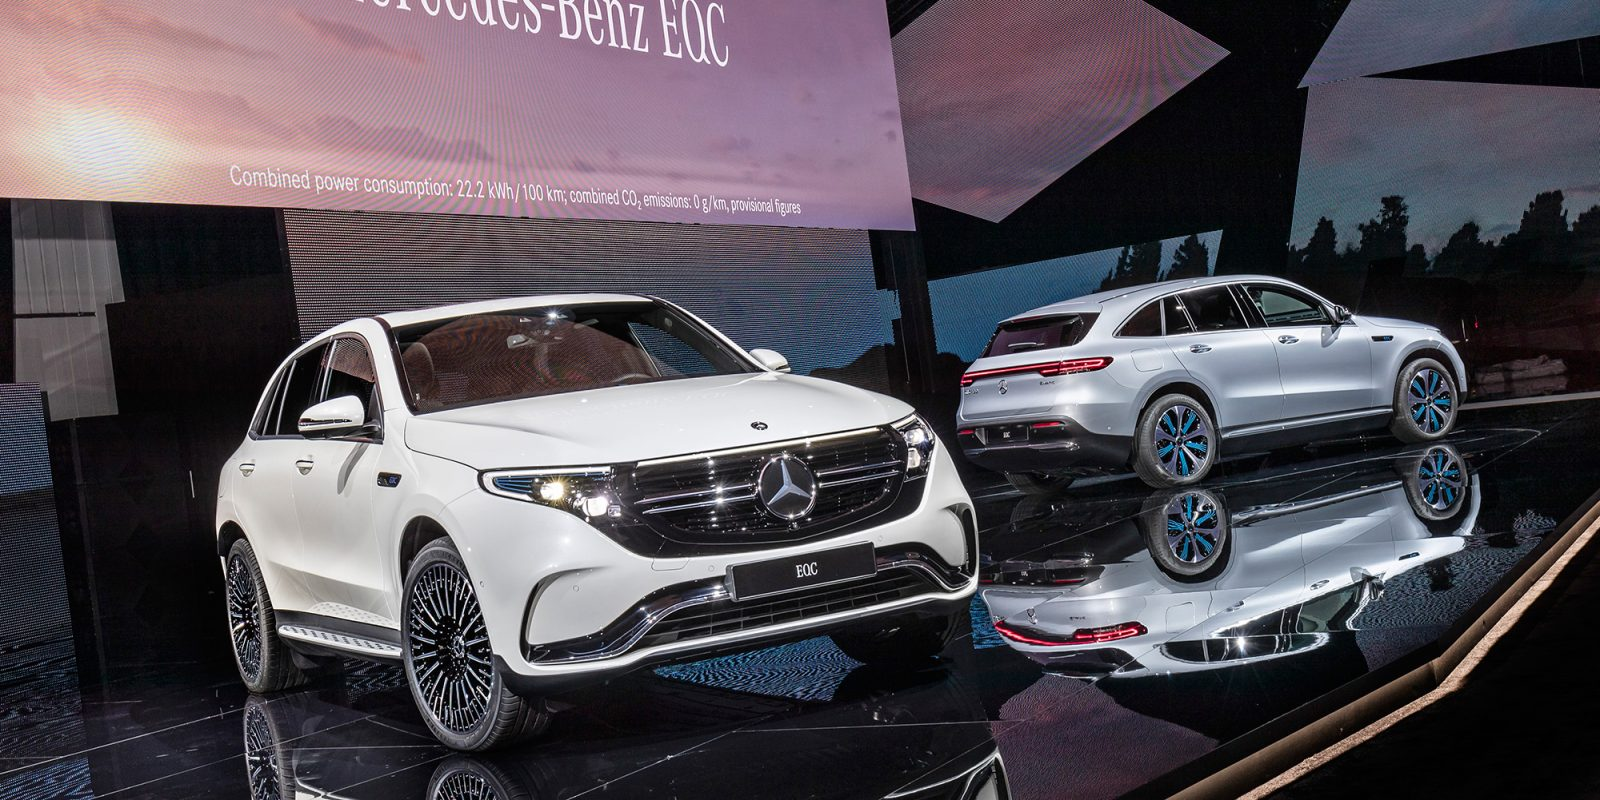 Mercedes-Benz releases life cycle environmental assessment of EQC electric SUV